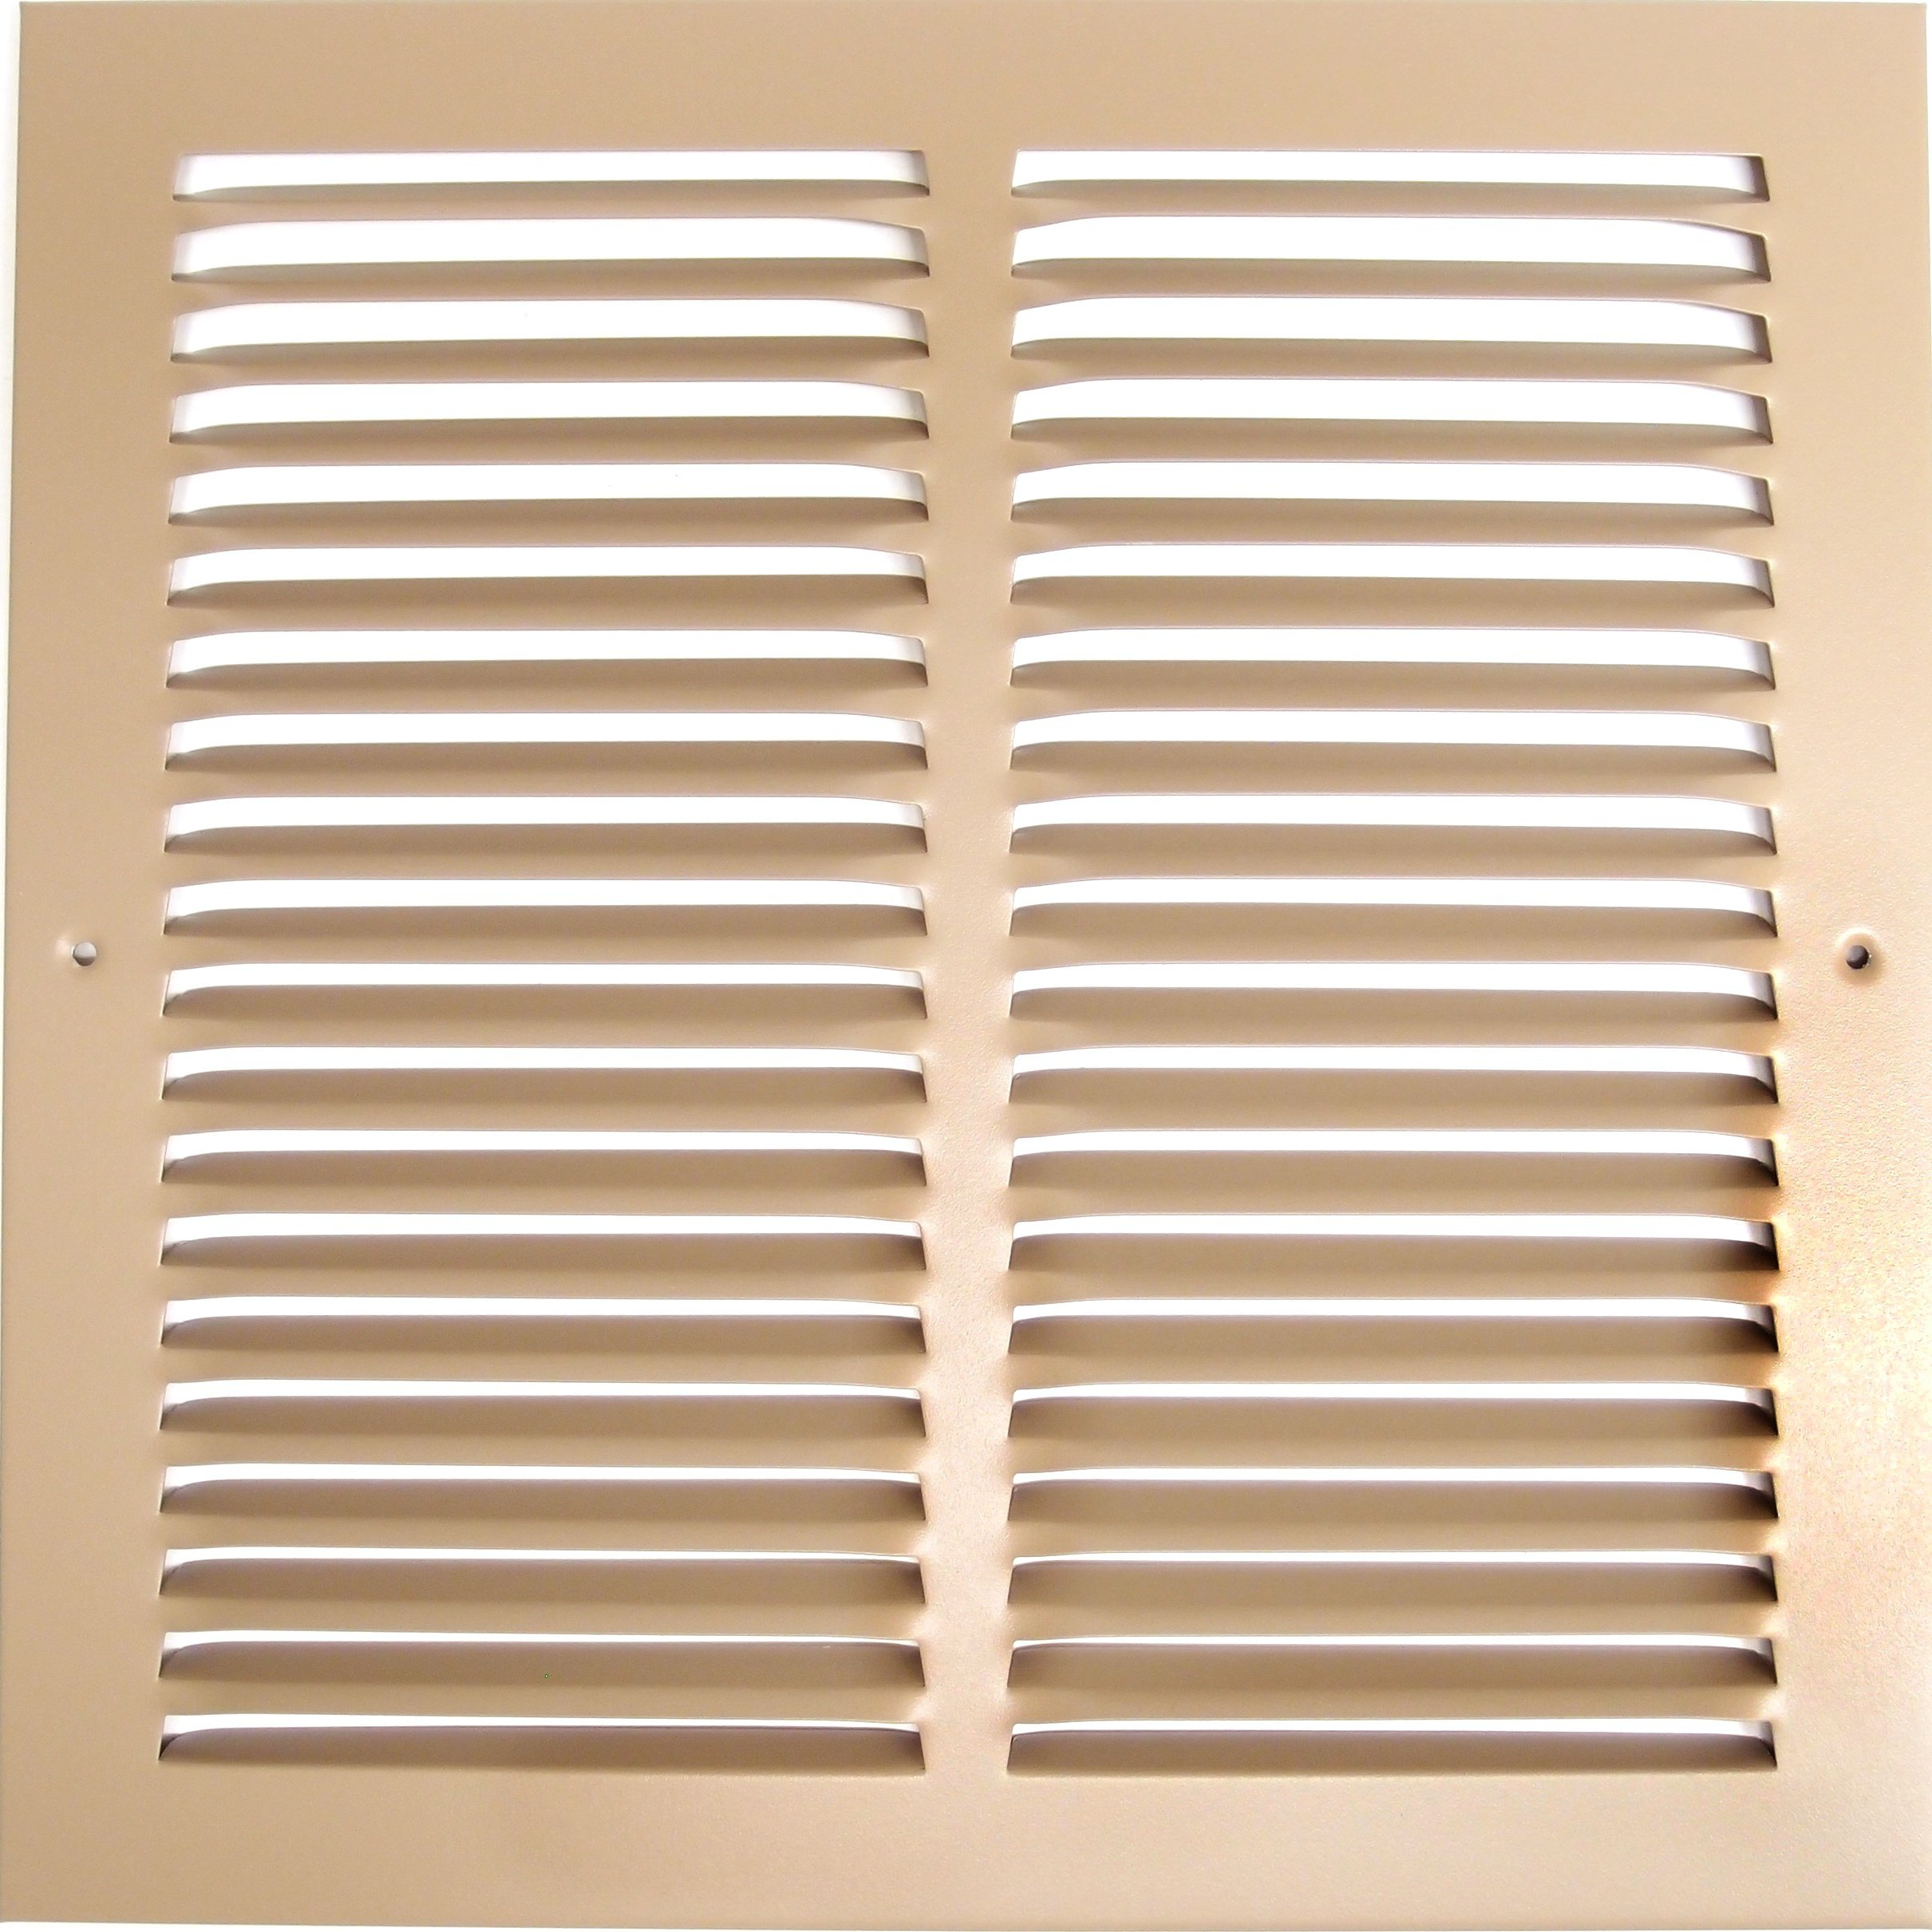 12''w X 12''h Steel Return Air Grilles - Sidewall and Cieling - HVAC DUCT COVER - Brown [Outer Dimensions: 13.75''w X 13.75''h]